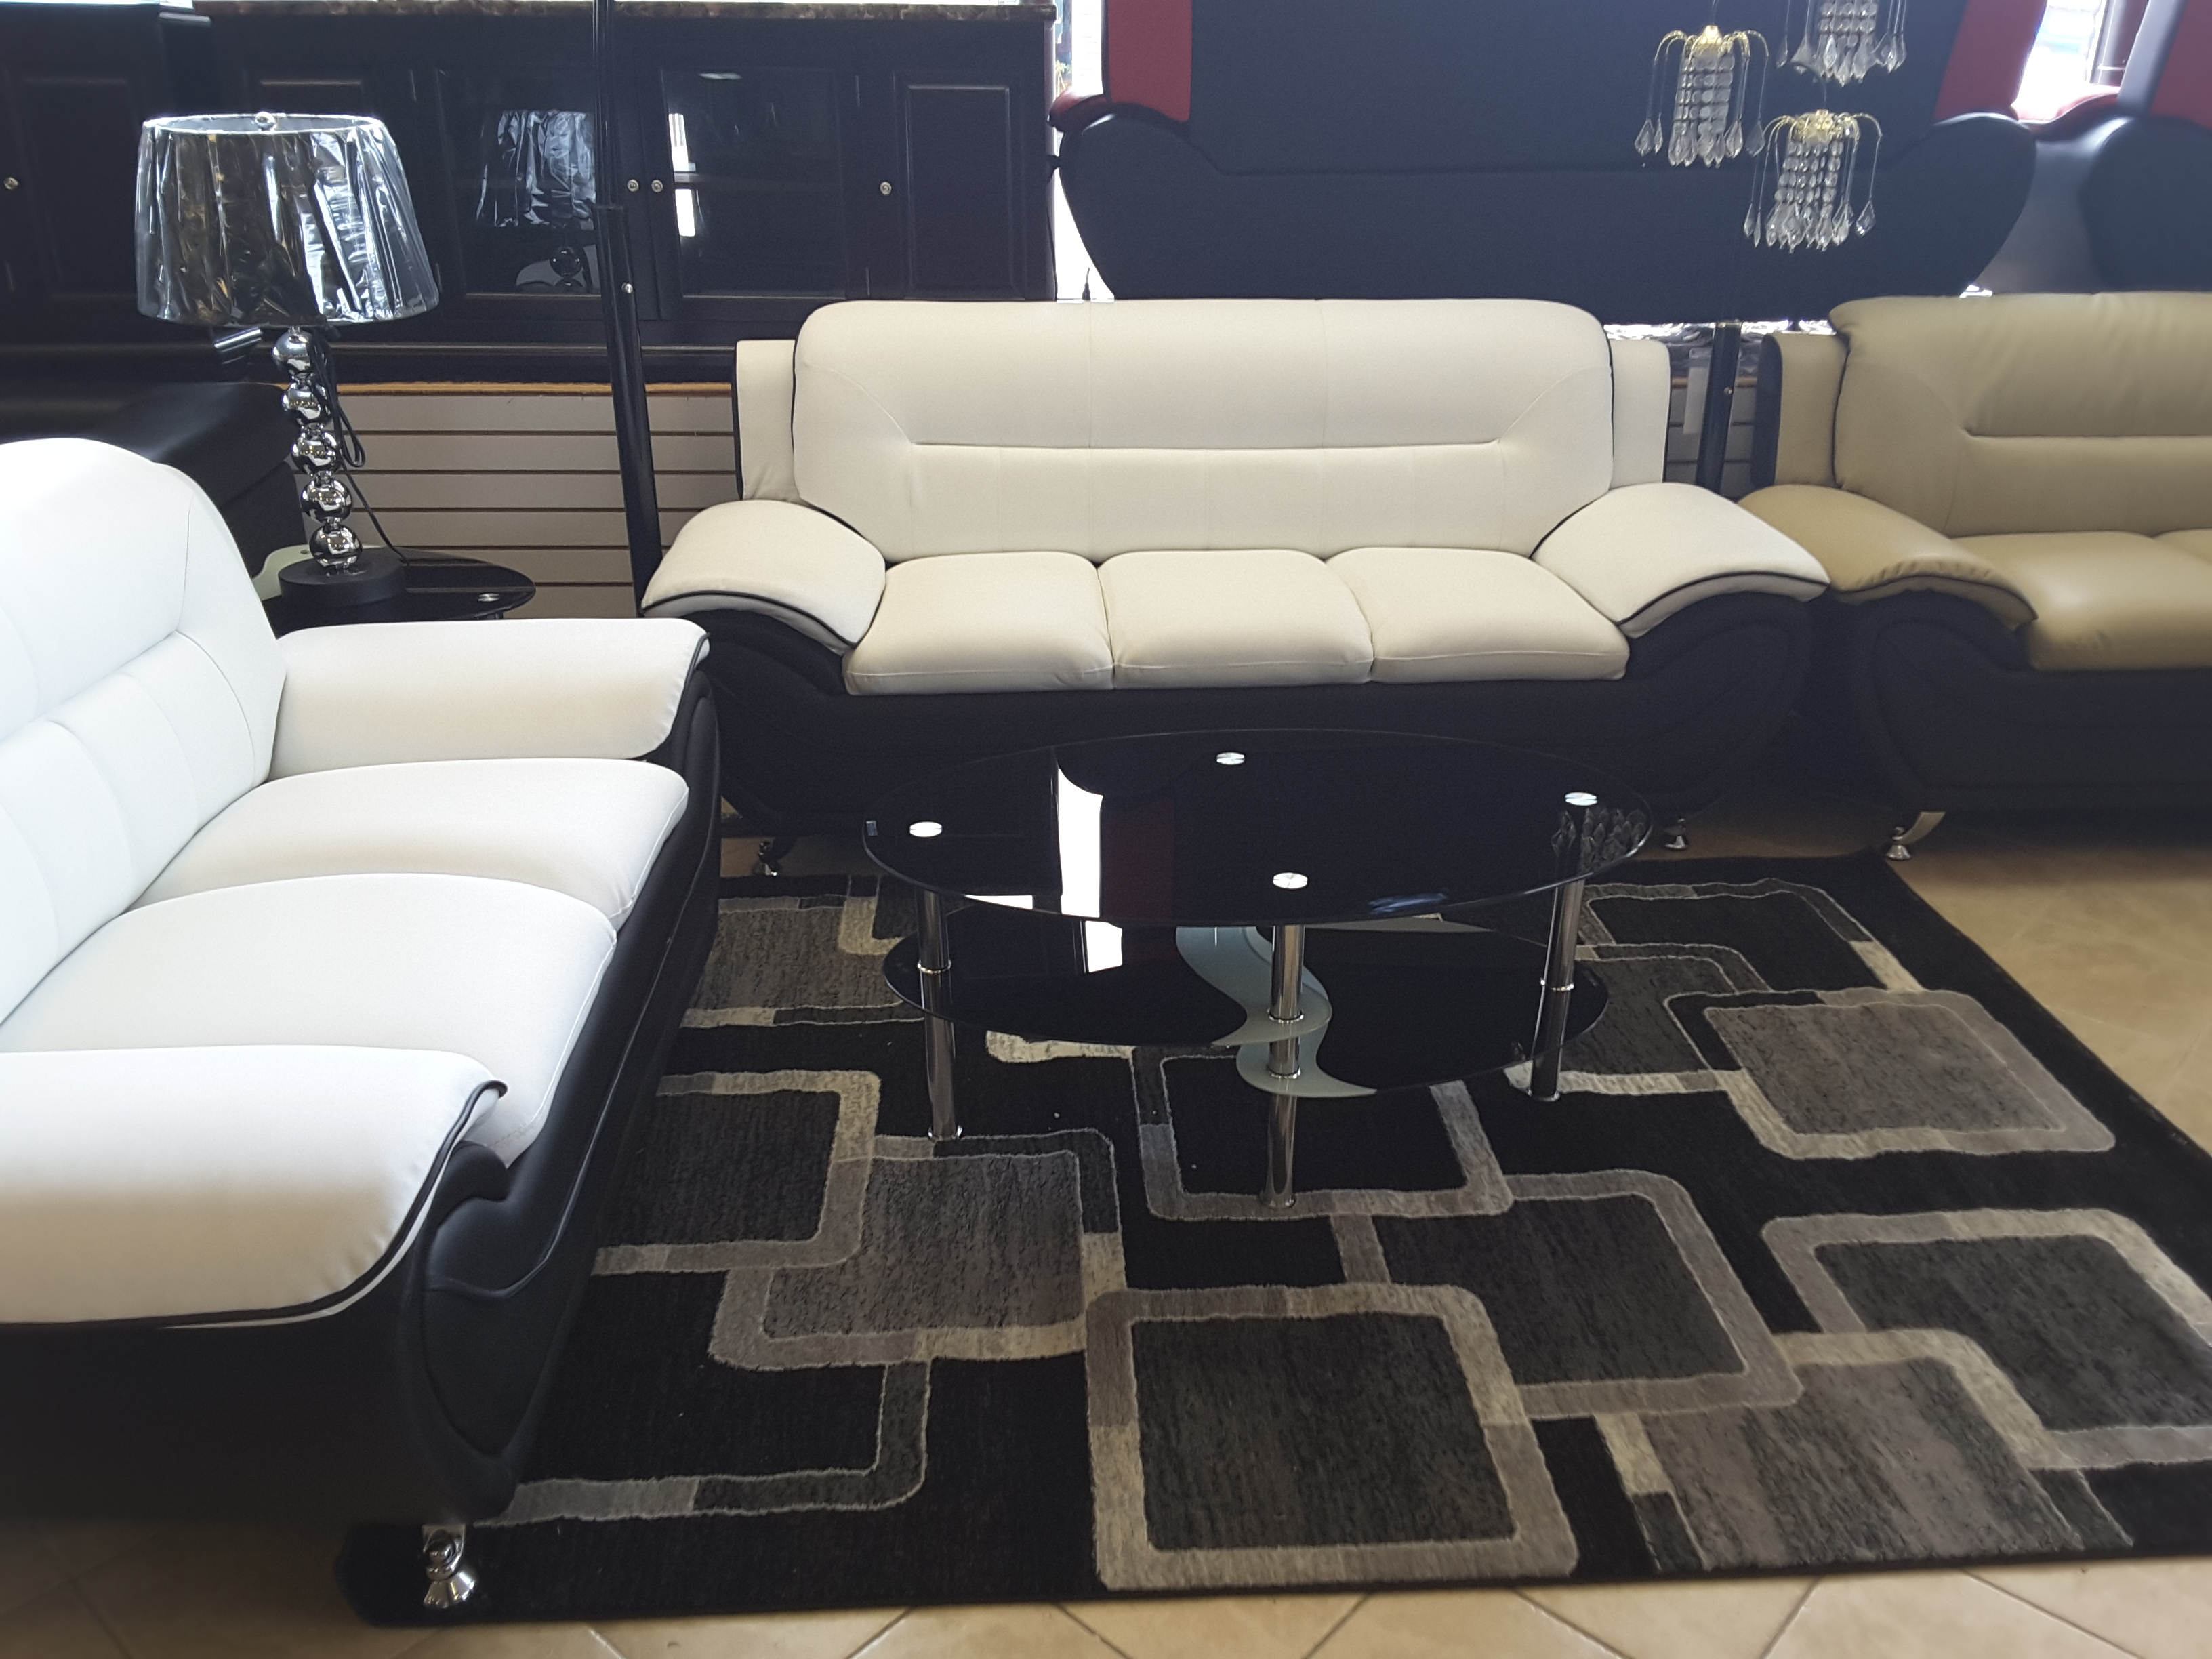 in styles store furniture collection the dining stores greco xfile room rochester of best trend jack pics and adirondack ny